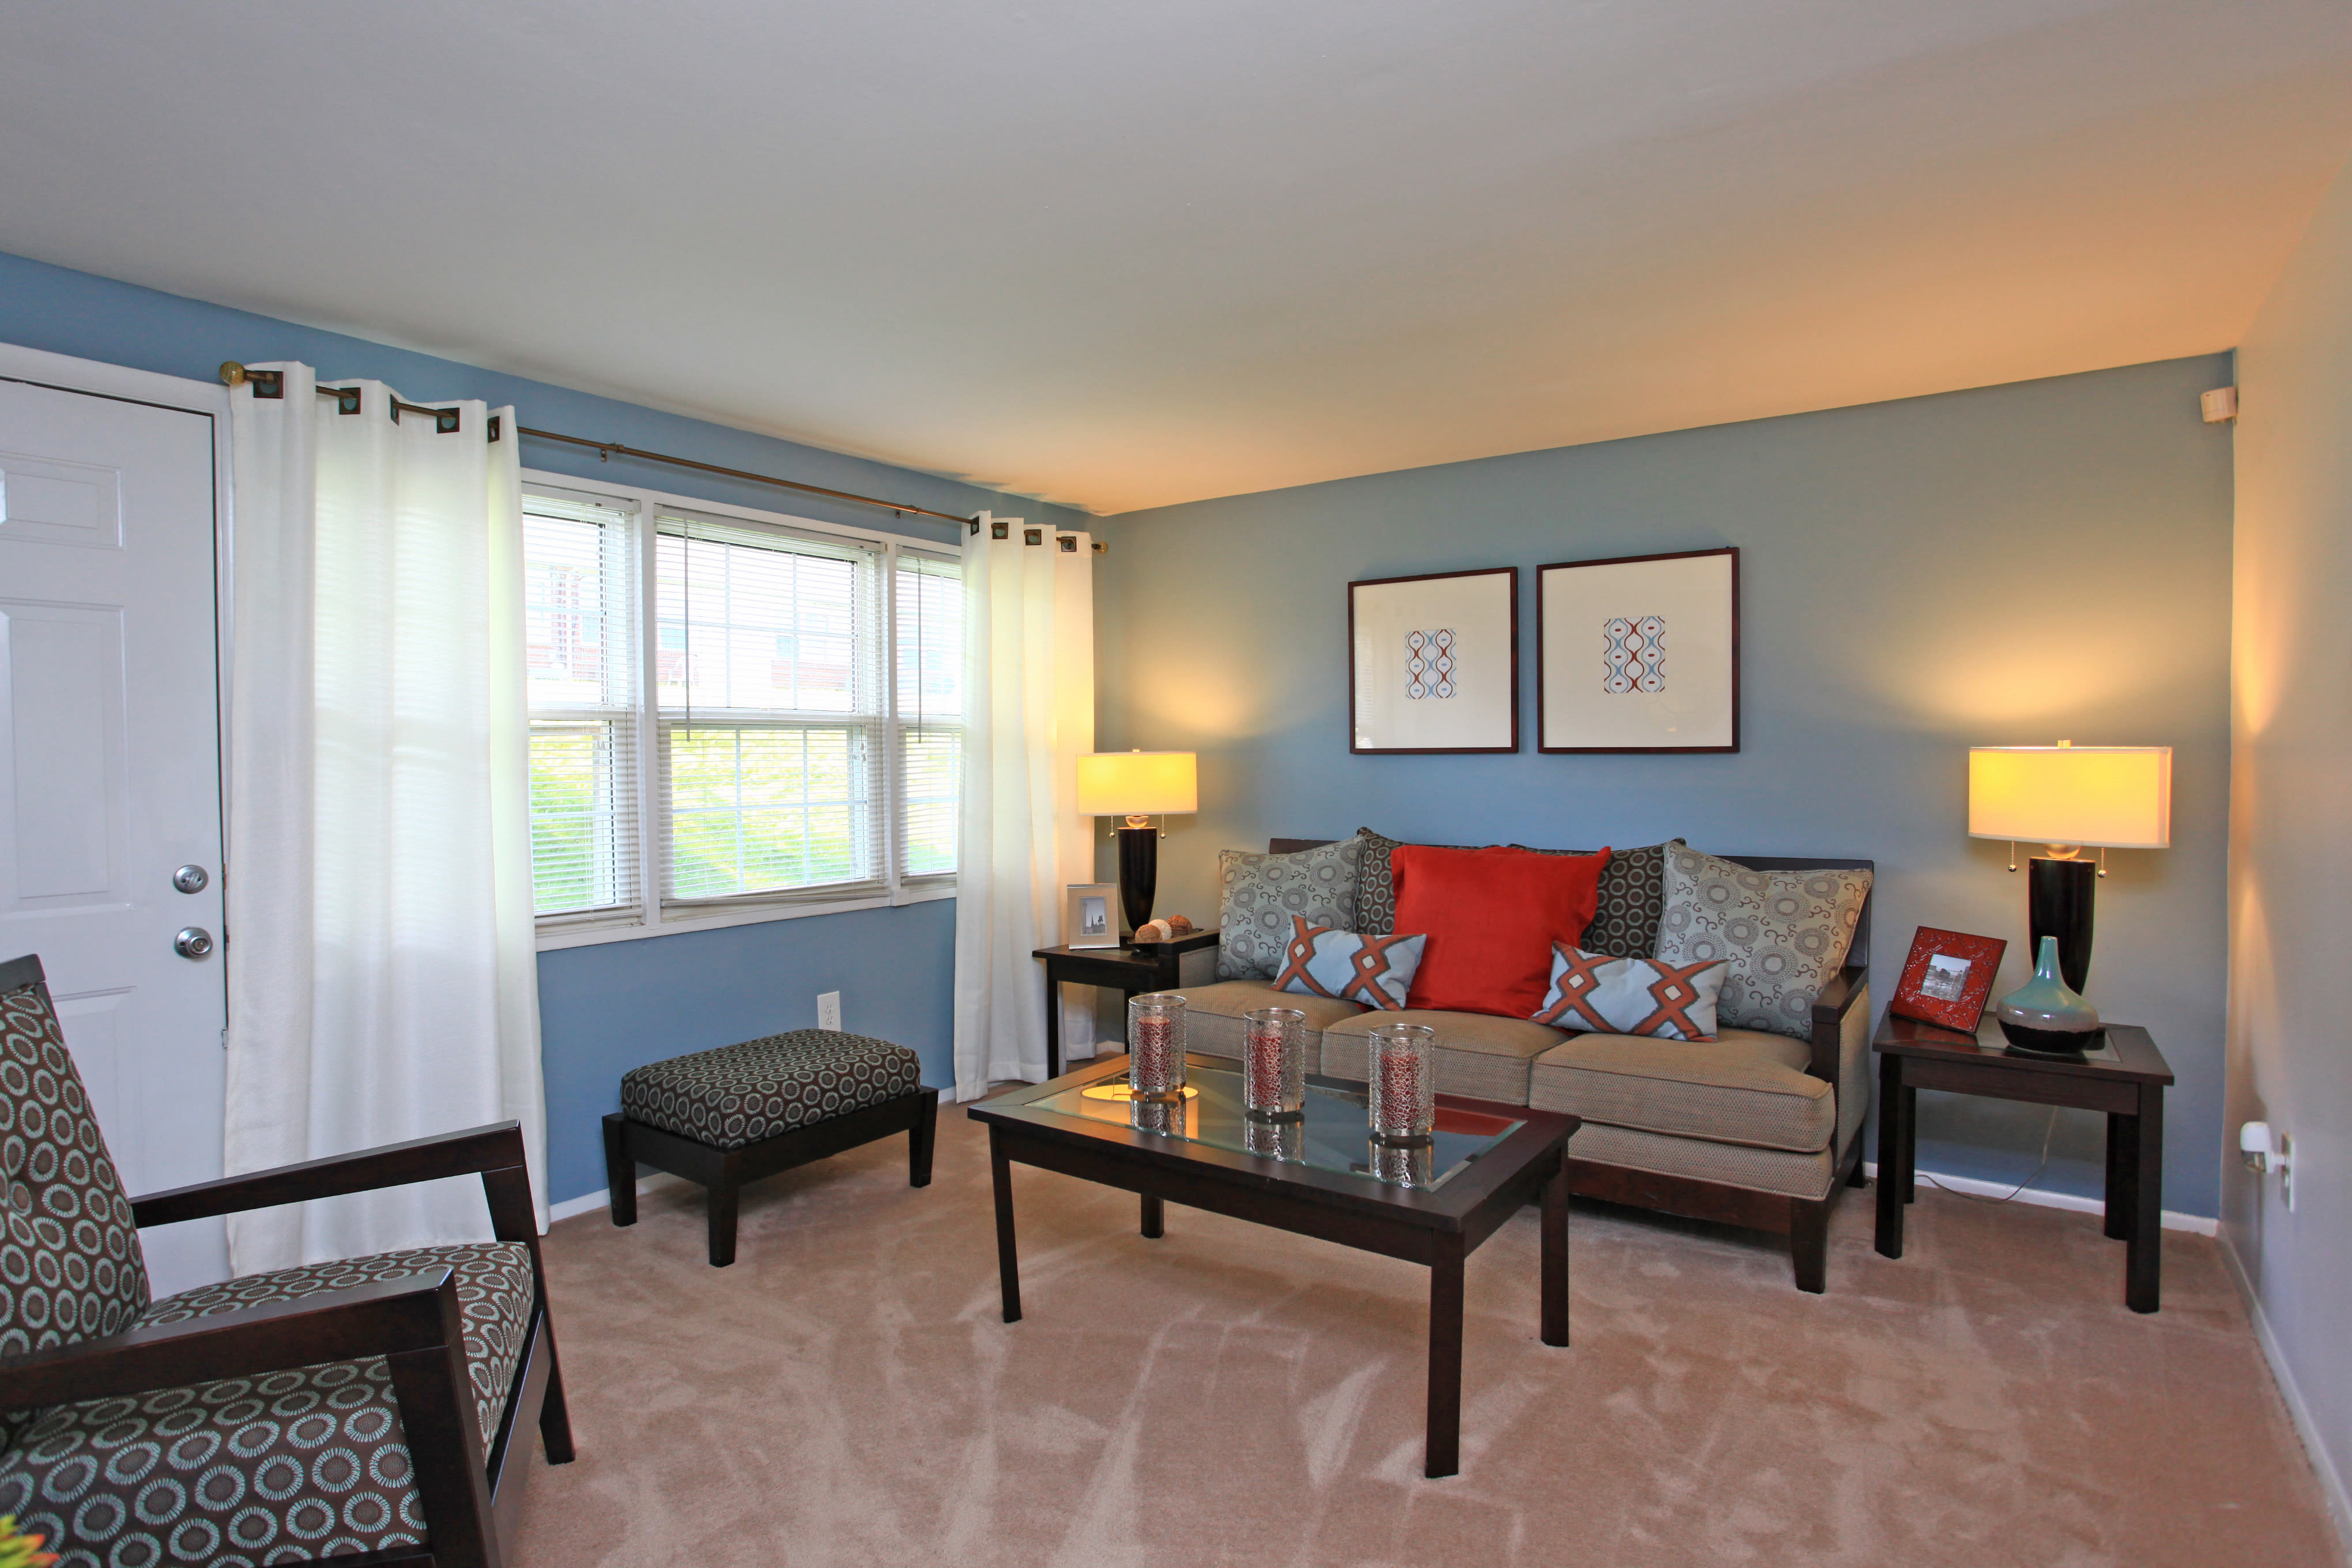 Our apartments in Halethorpe, Maryland offer a living room